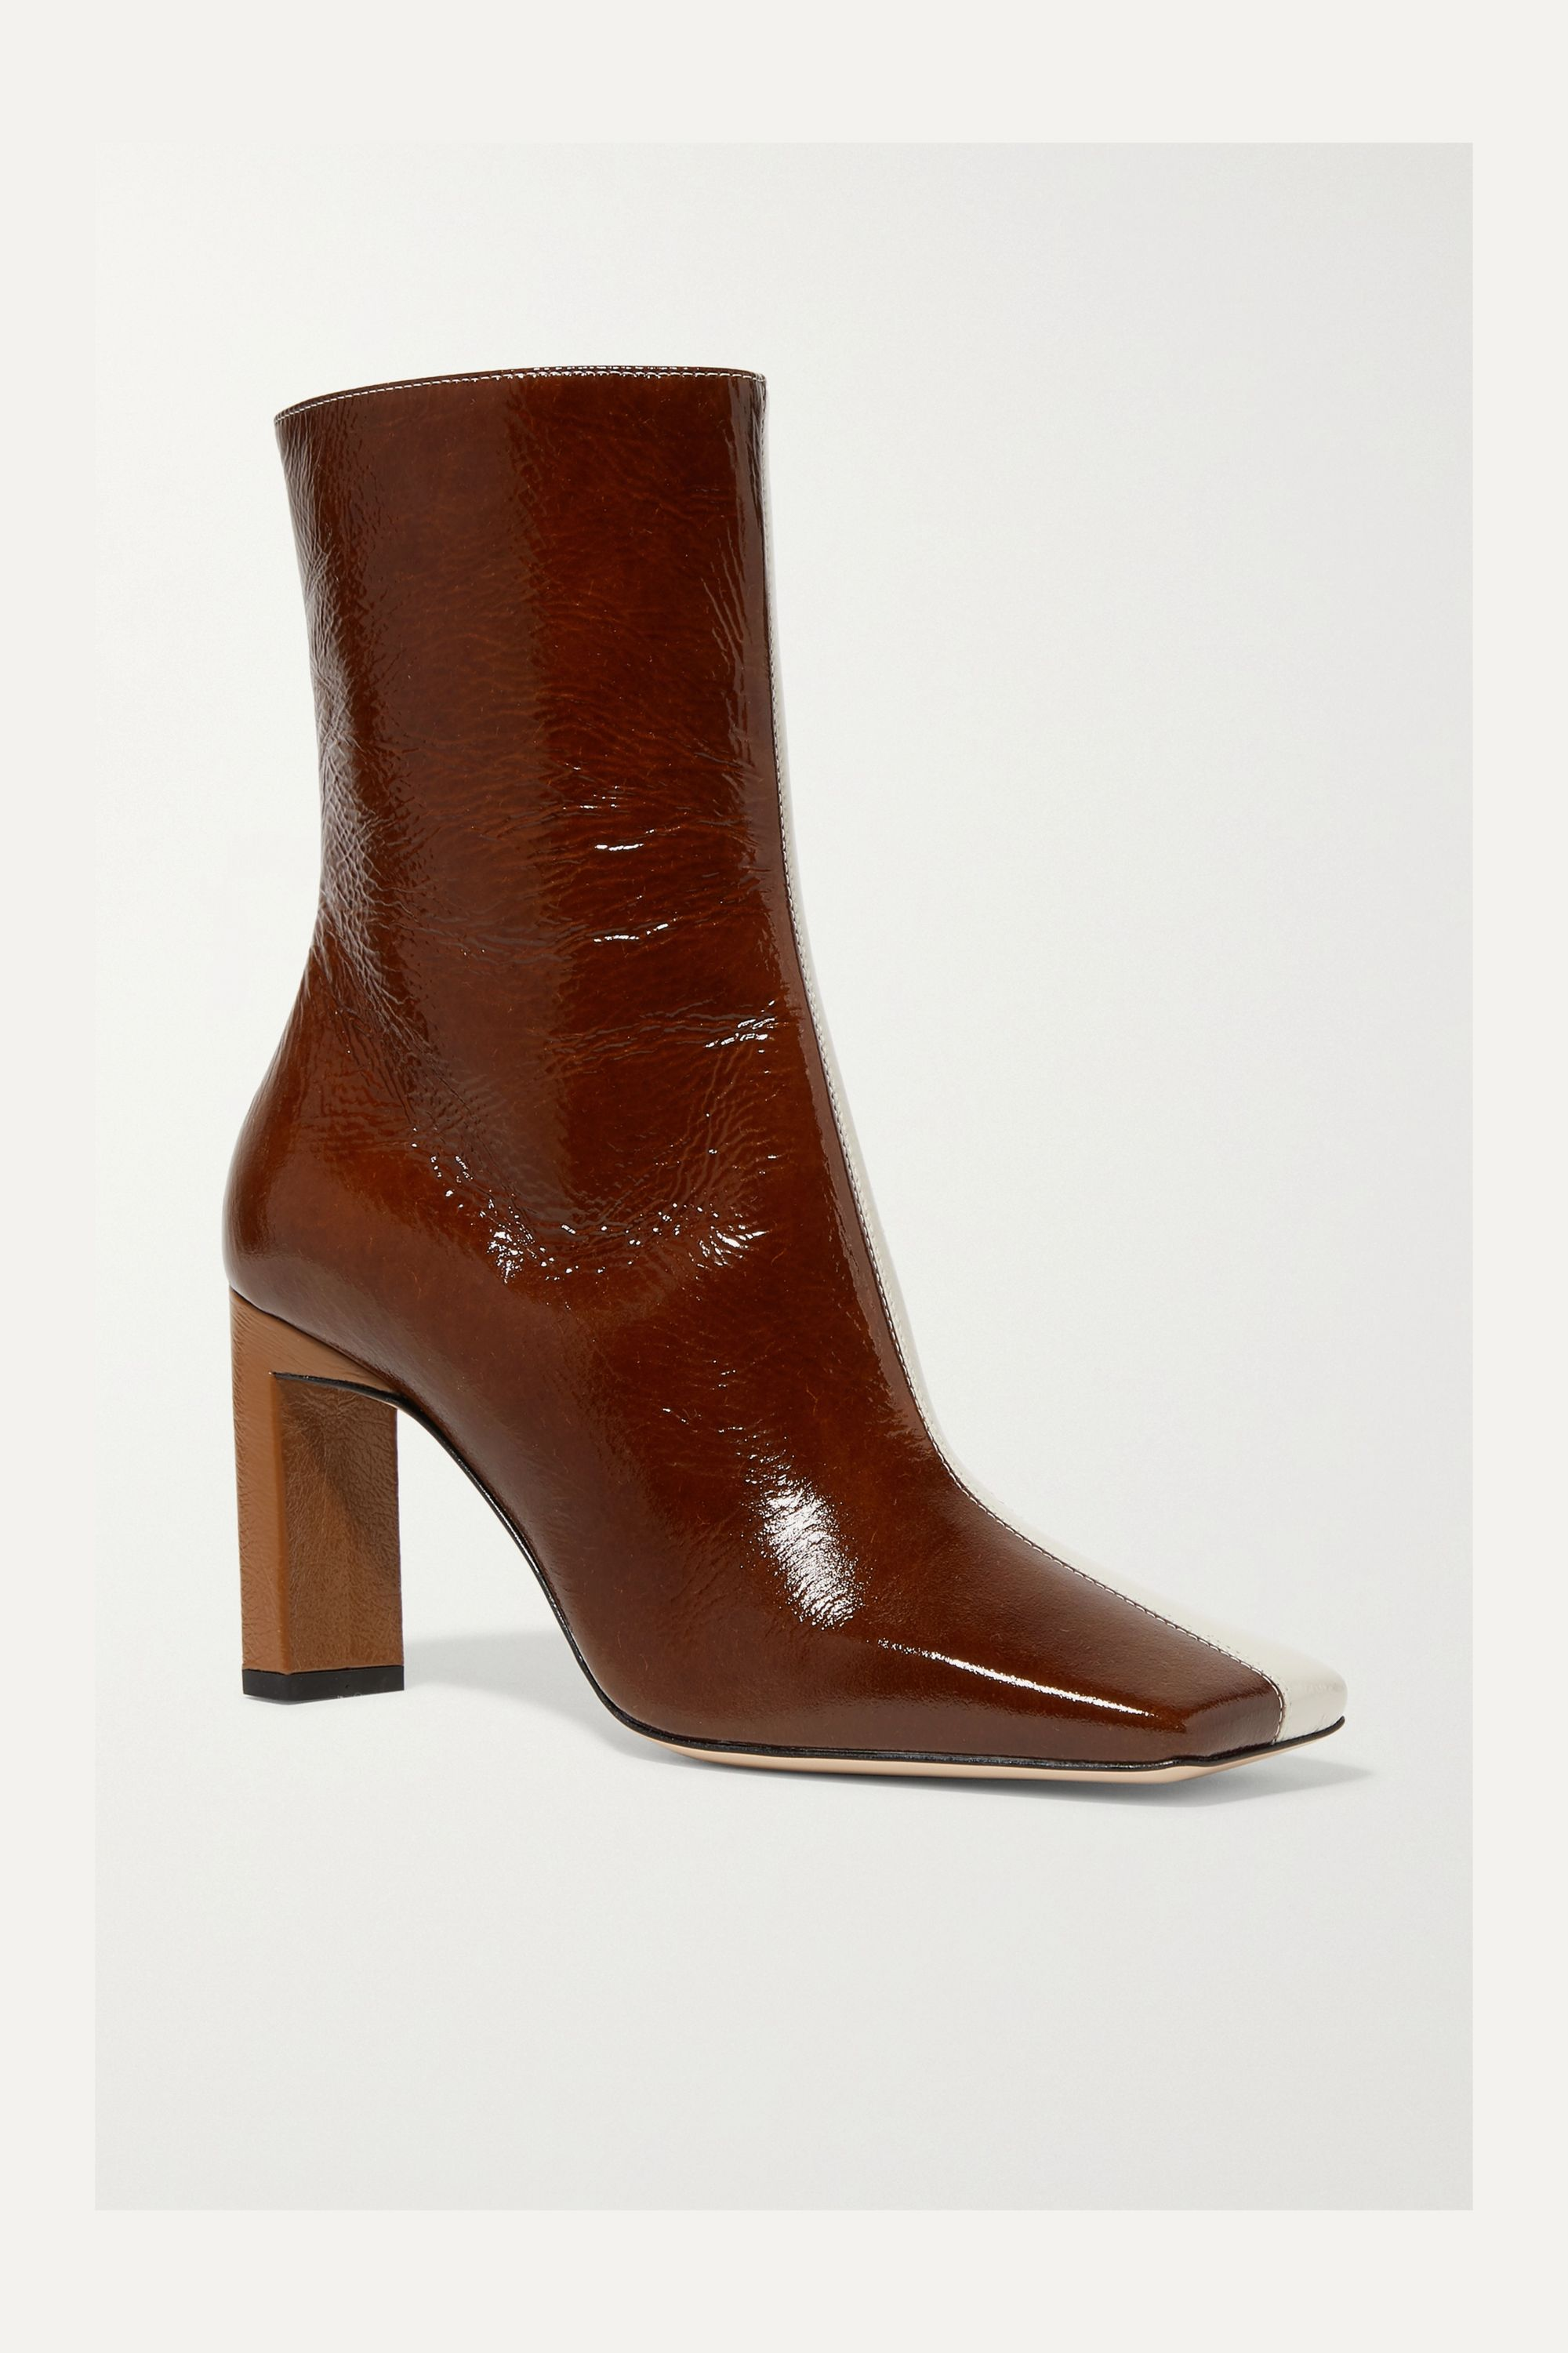 Wandler Isa two-tone crinkled patent-leather ankle boots